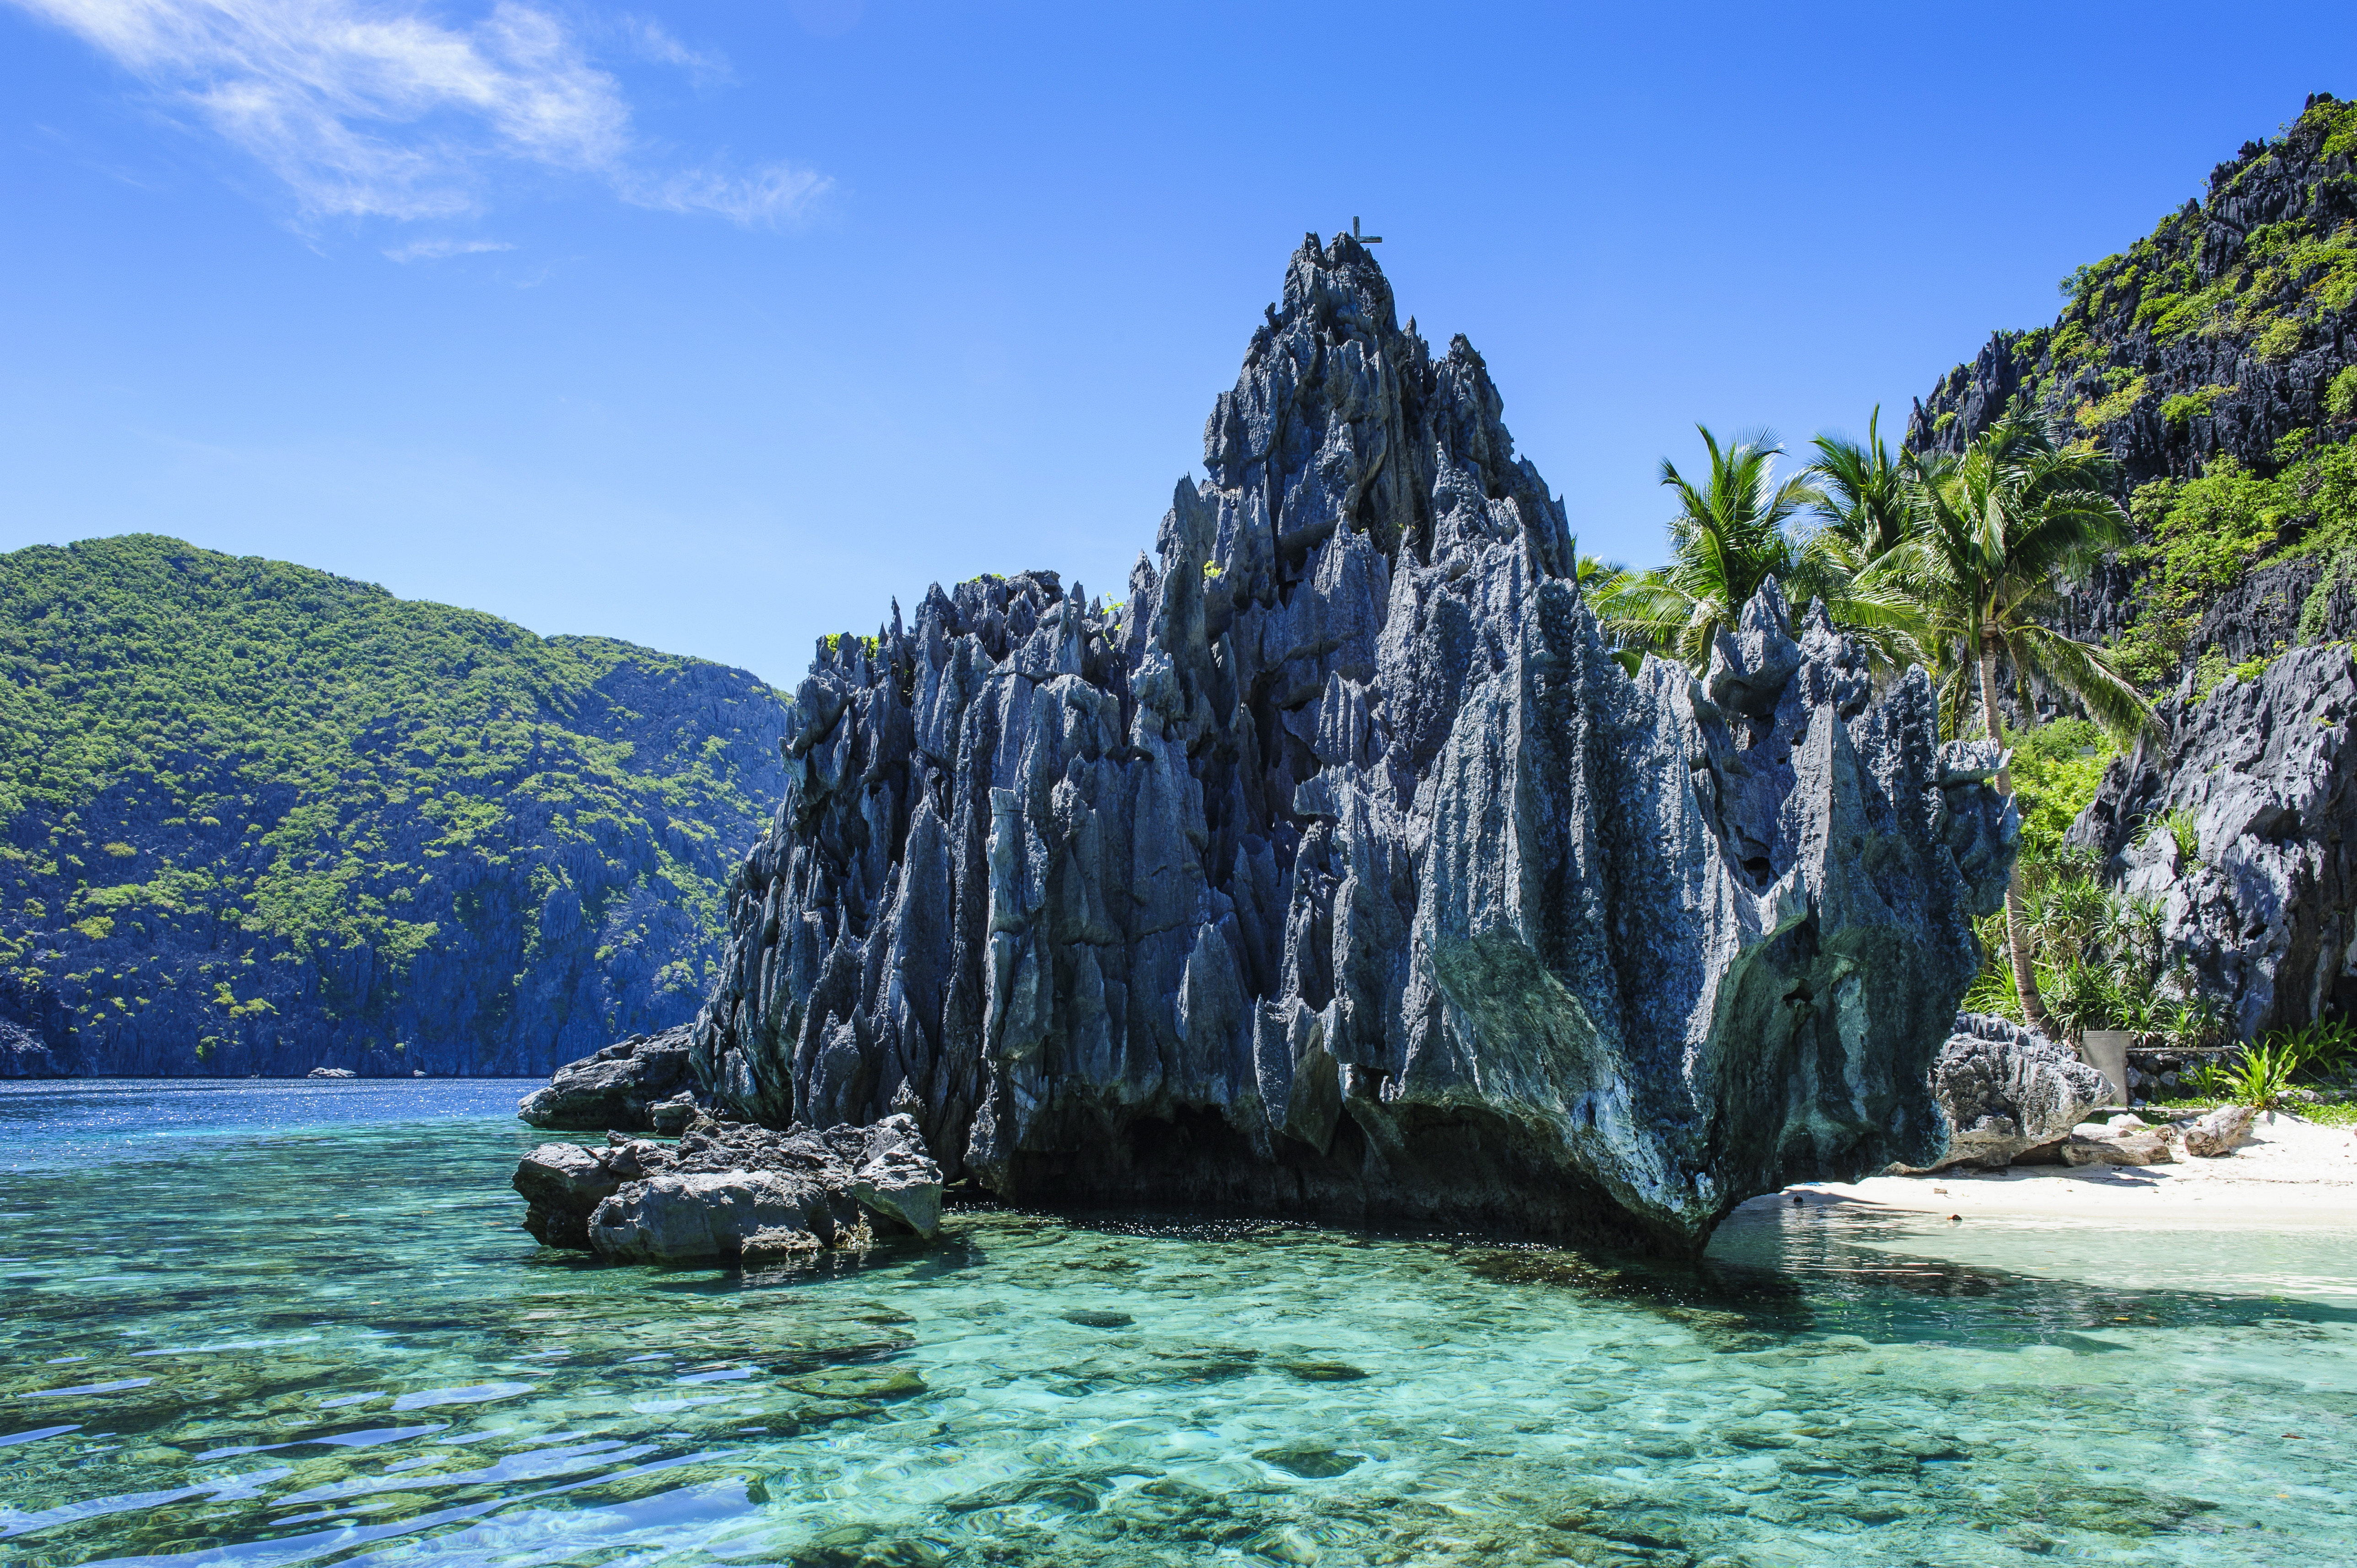 Little white beach and crystal clear water in the Bacuit archipelago, Palawan, Philippines, Southeast Asia, Asia